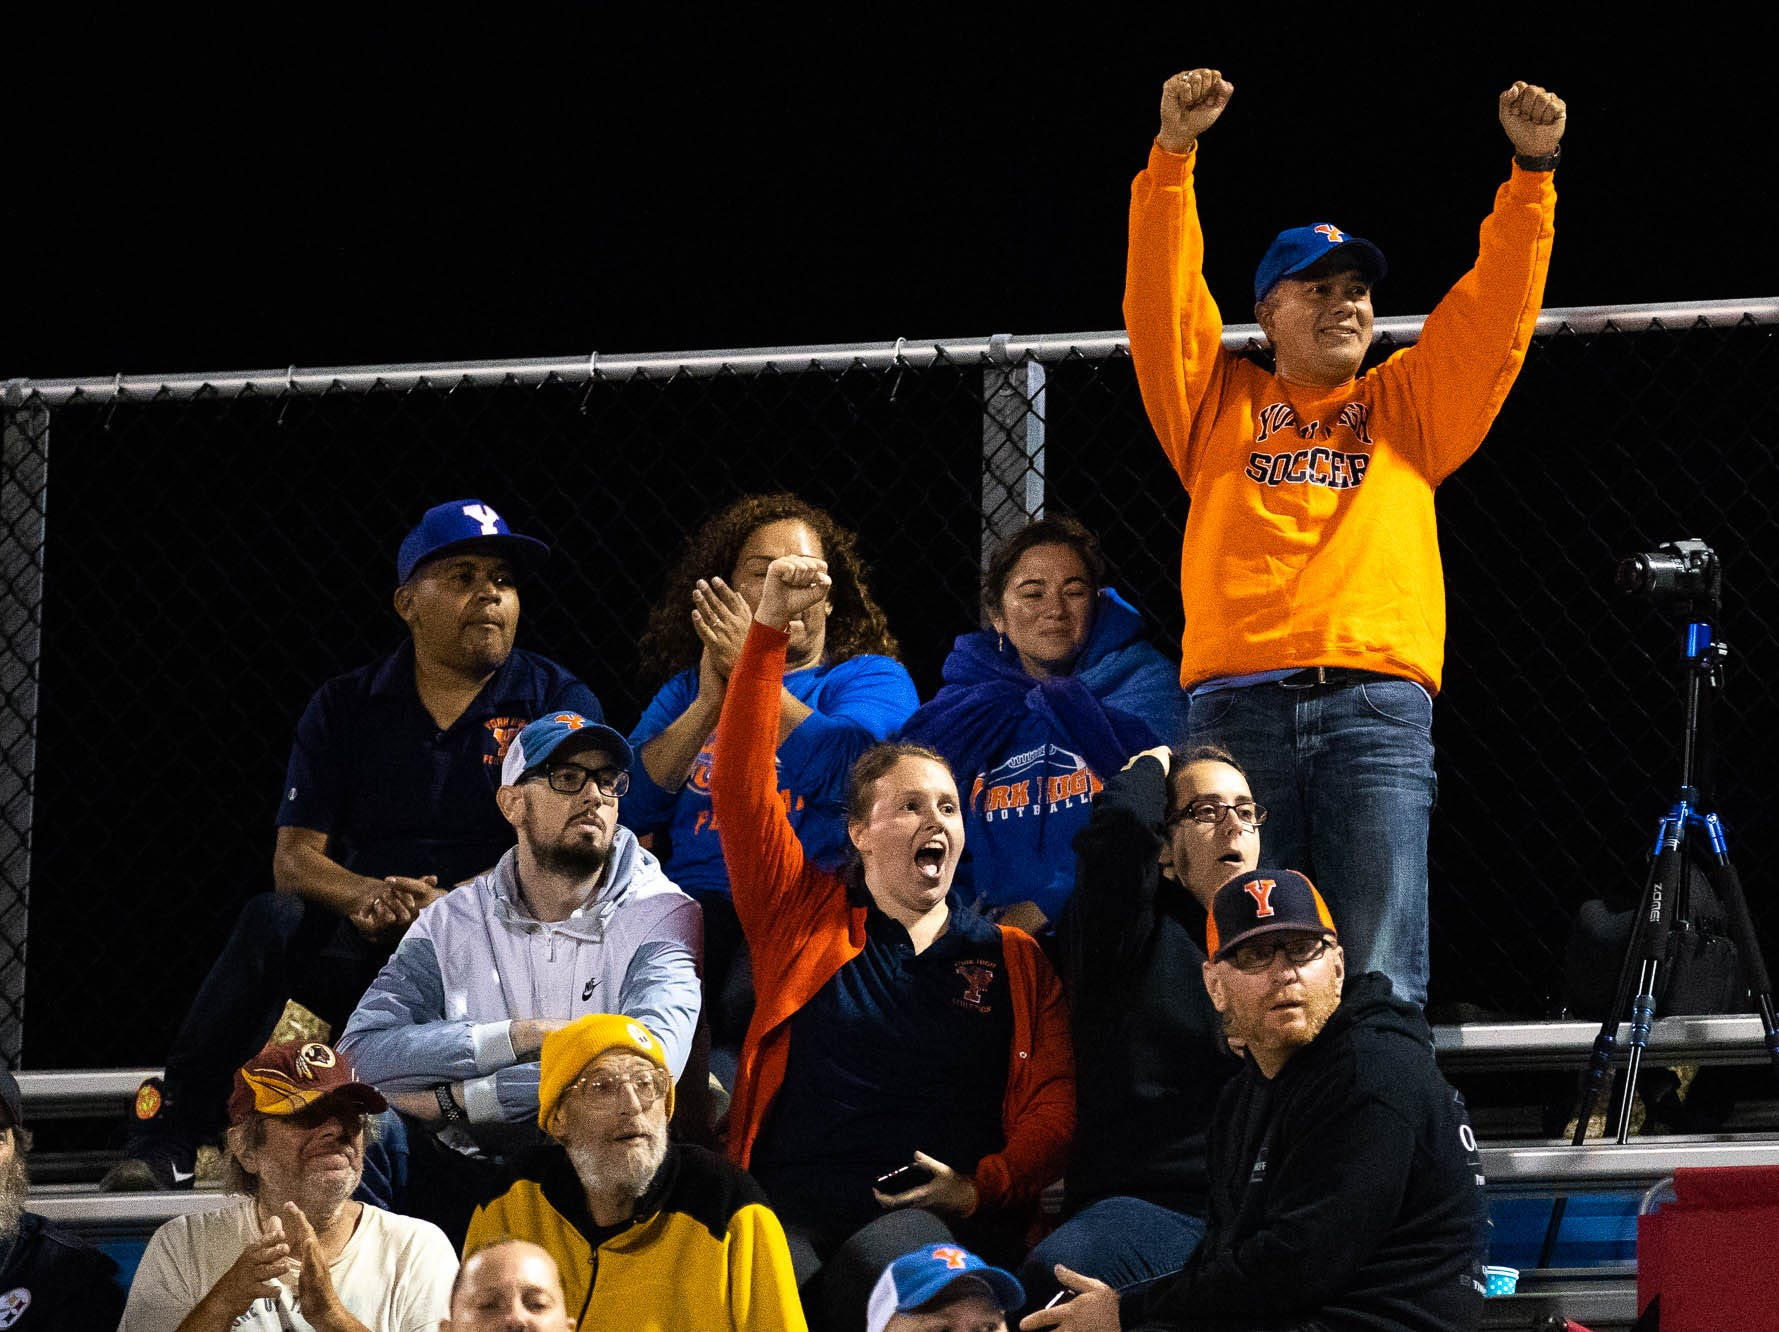 York High fans cheer during a football game between York High and Spring Grove, Friday, Sept. 21, 2018, in Spring Grove. The York High Bearcats beat the Spring Grove Rockets 55-14.